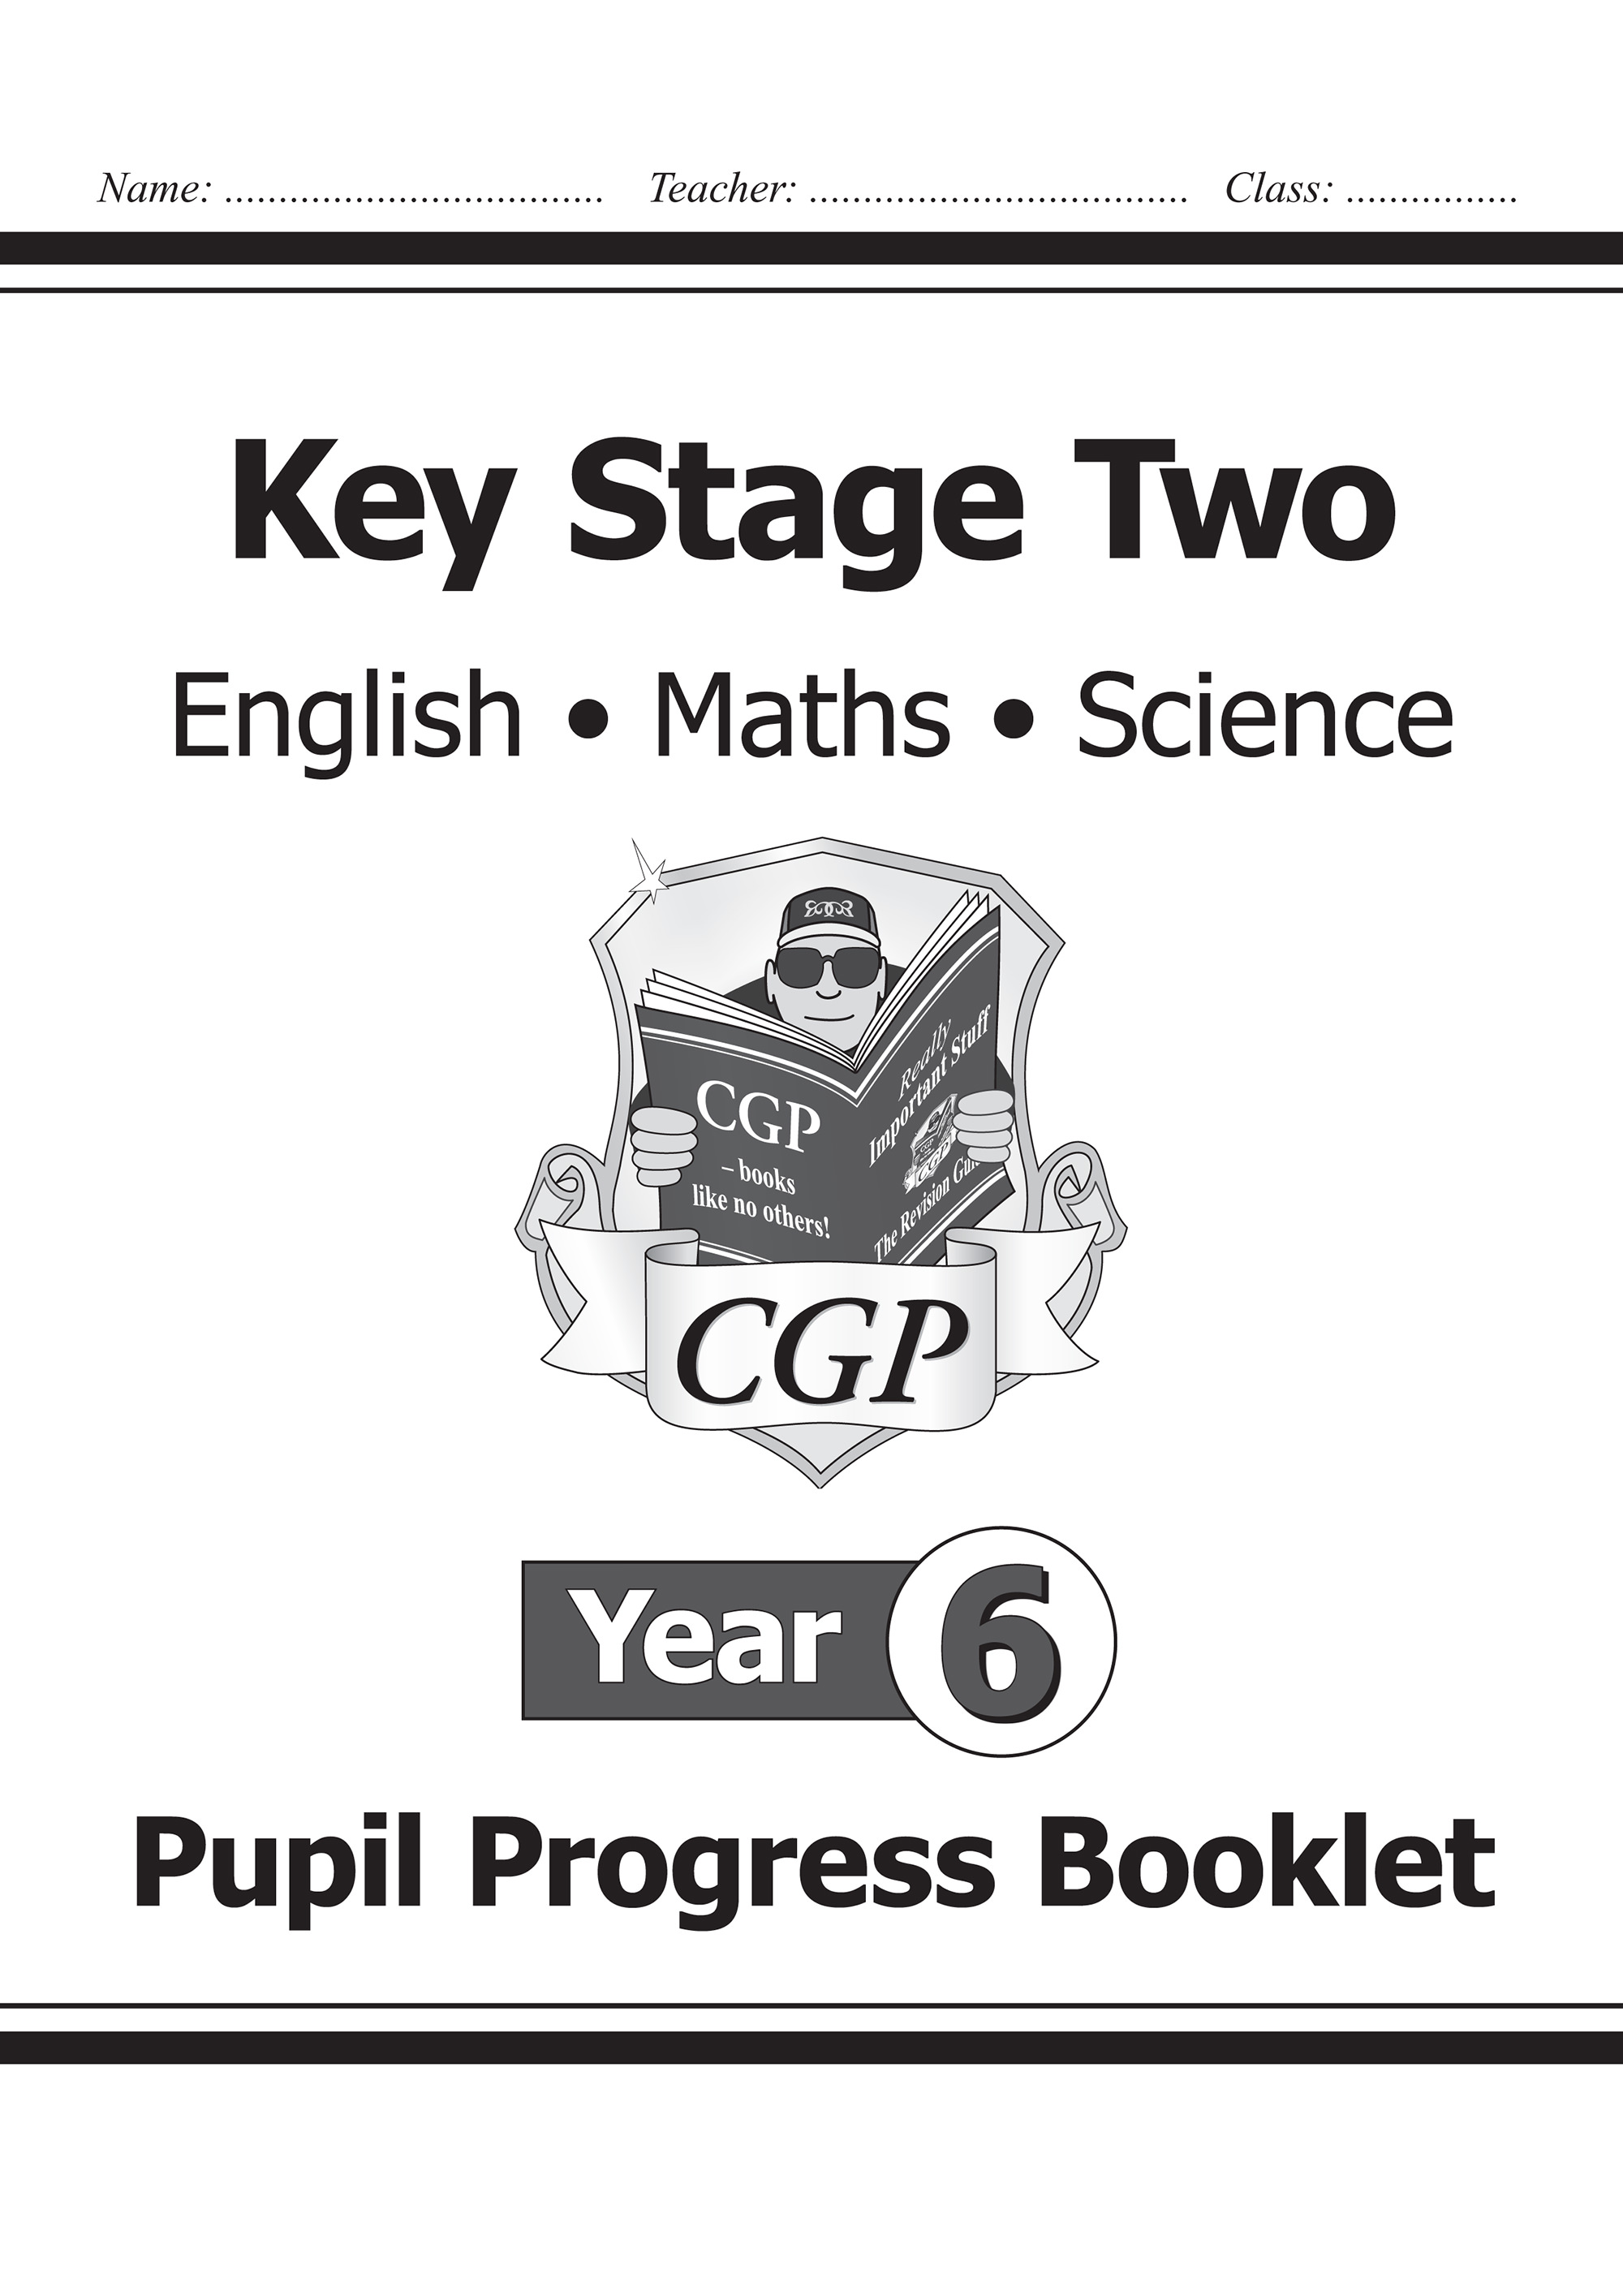 SME6P21 - KS2 Pupil Progress Booklet for English, Maths and Science - Year 6